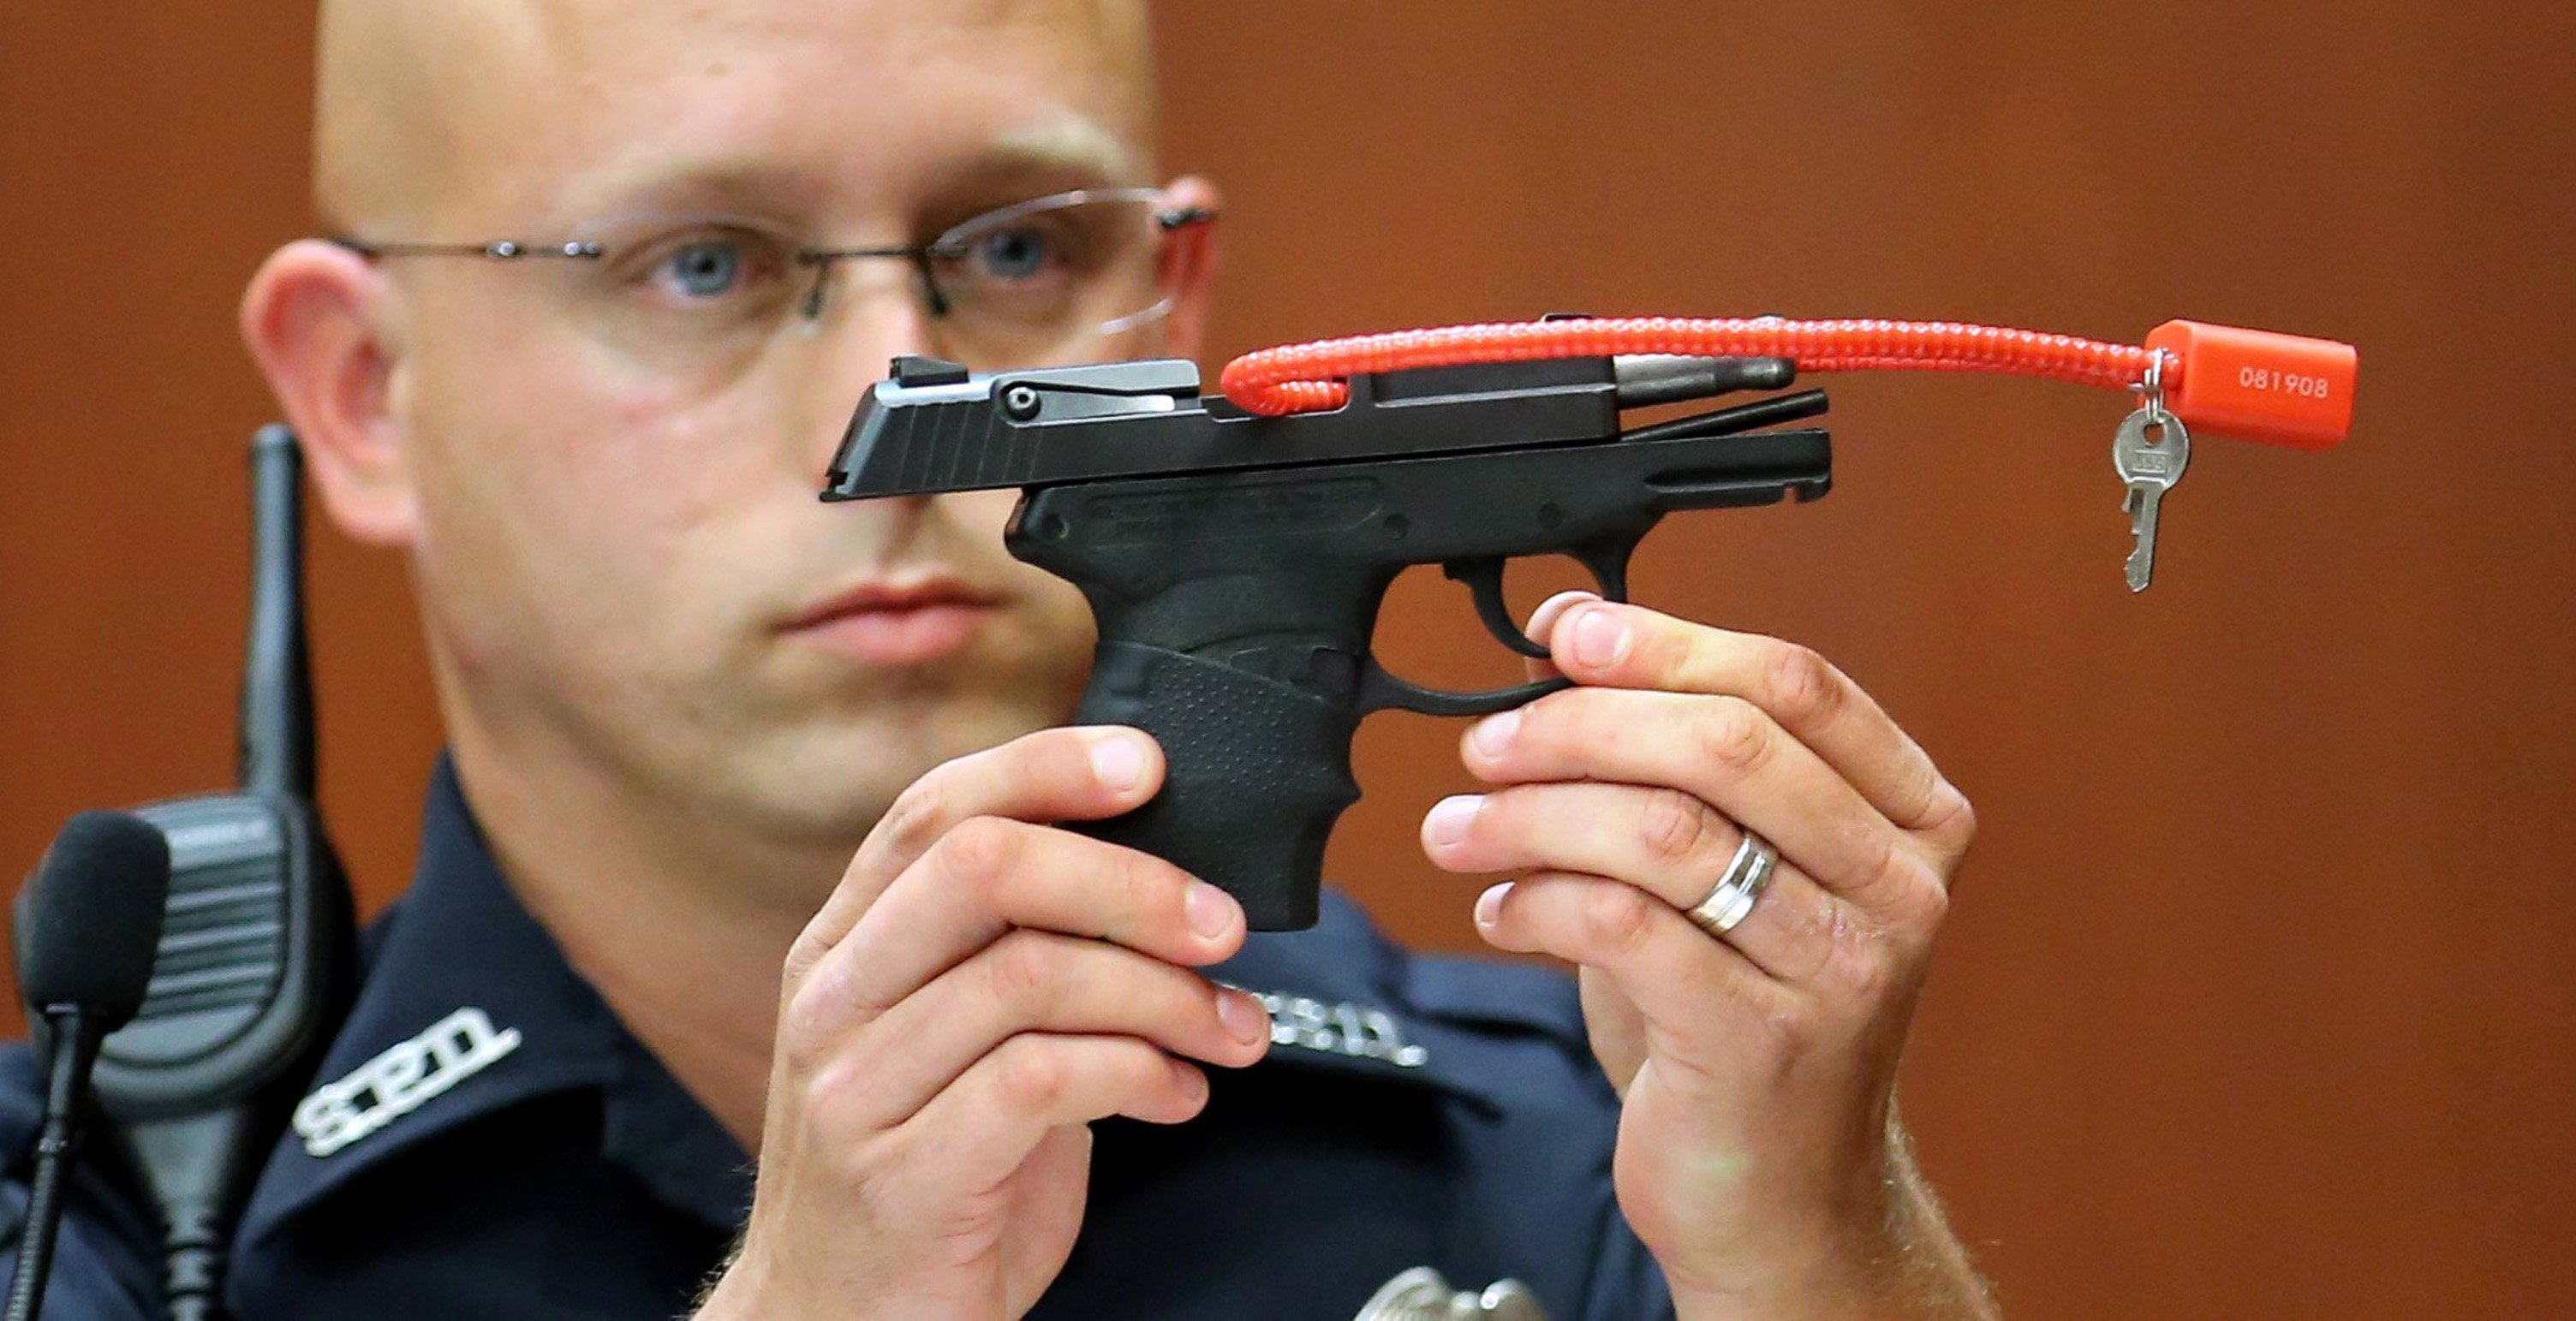 Sanford police officer Timothy Smith holds up the gun that was used to kill Trayvon Martin, while testifying in the 15th day of the George Zimmerman trial, in Seminole circuit court in Sanford, Florida, Friday, June 28, 2013.